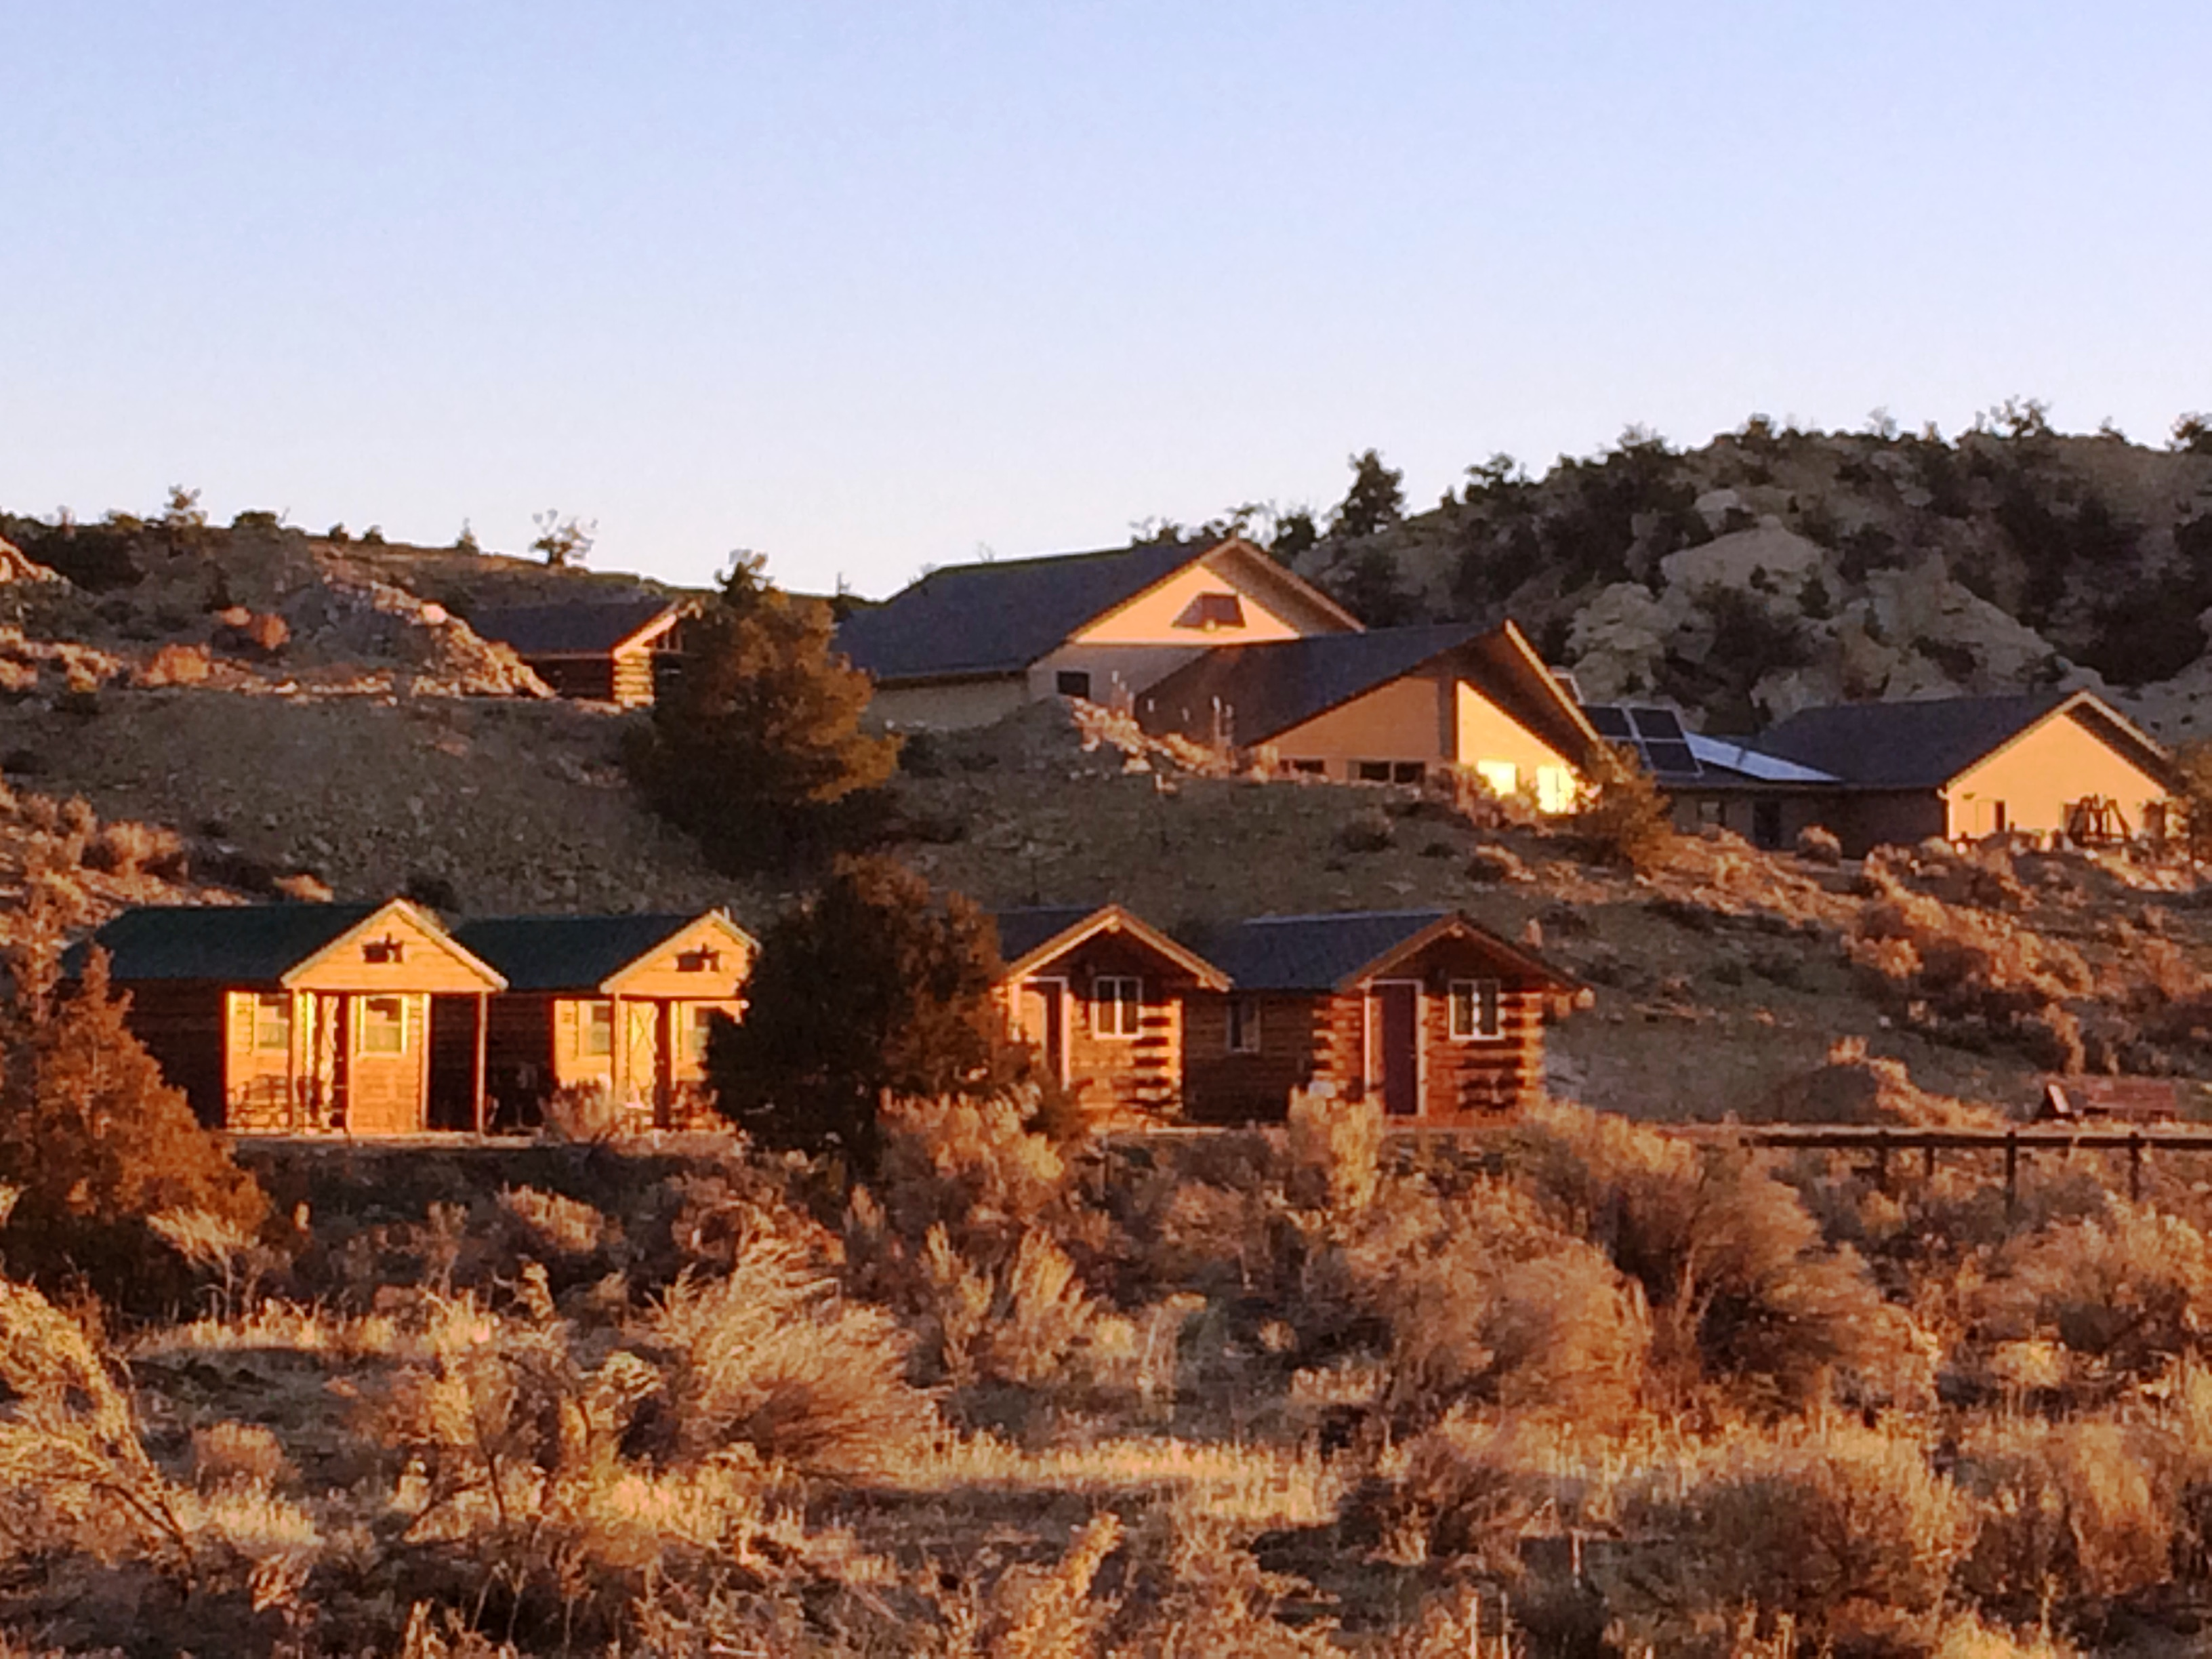 IMG_5161_Cabins-a